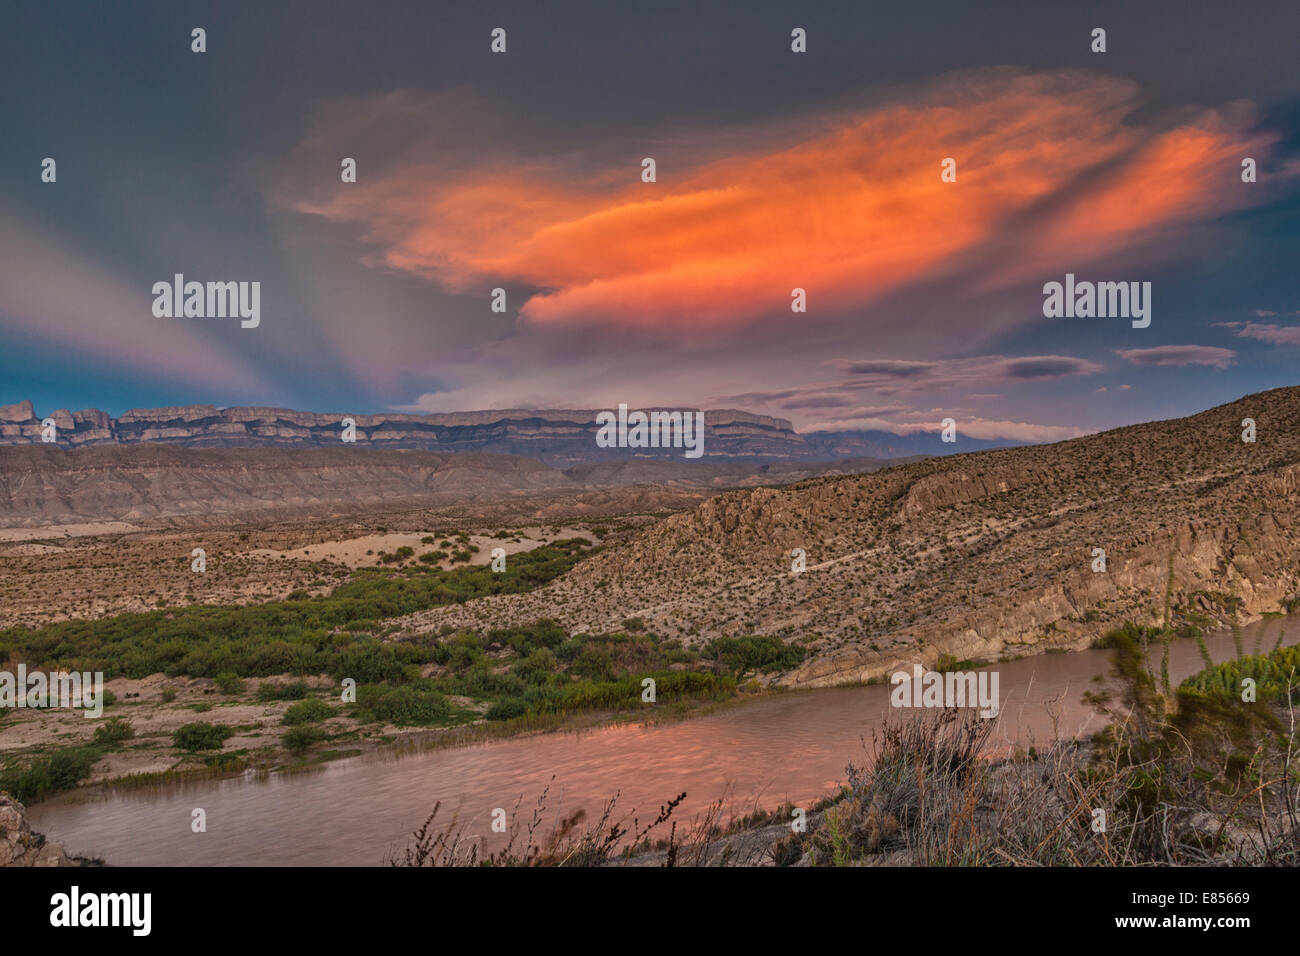 Sunset reflecting in the Rio Grande River in Boquillas Canyon with a backdrop of the Sierra del Carmen Mountains of Mexico. Stock Photo